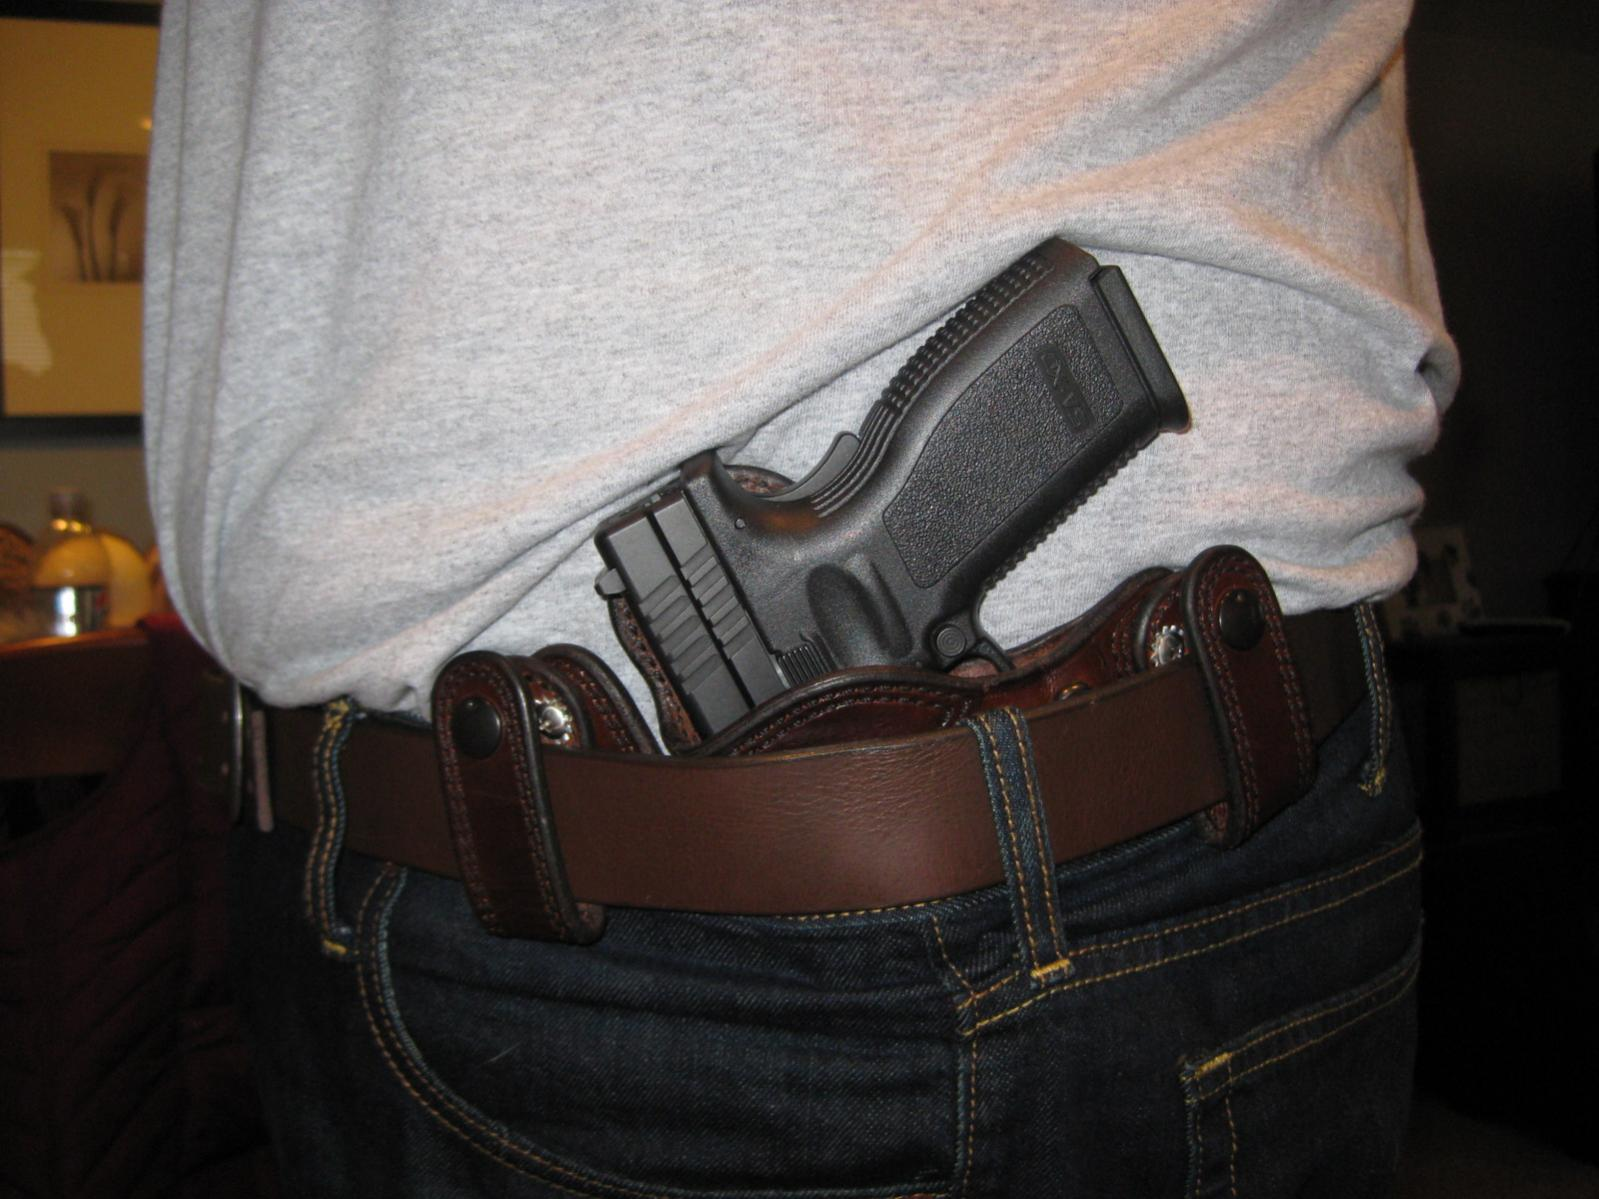 Let's See Your Pic's - How You Carry Concealed.-img_0576.jpg